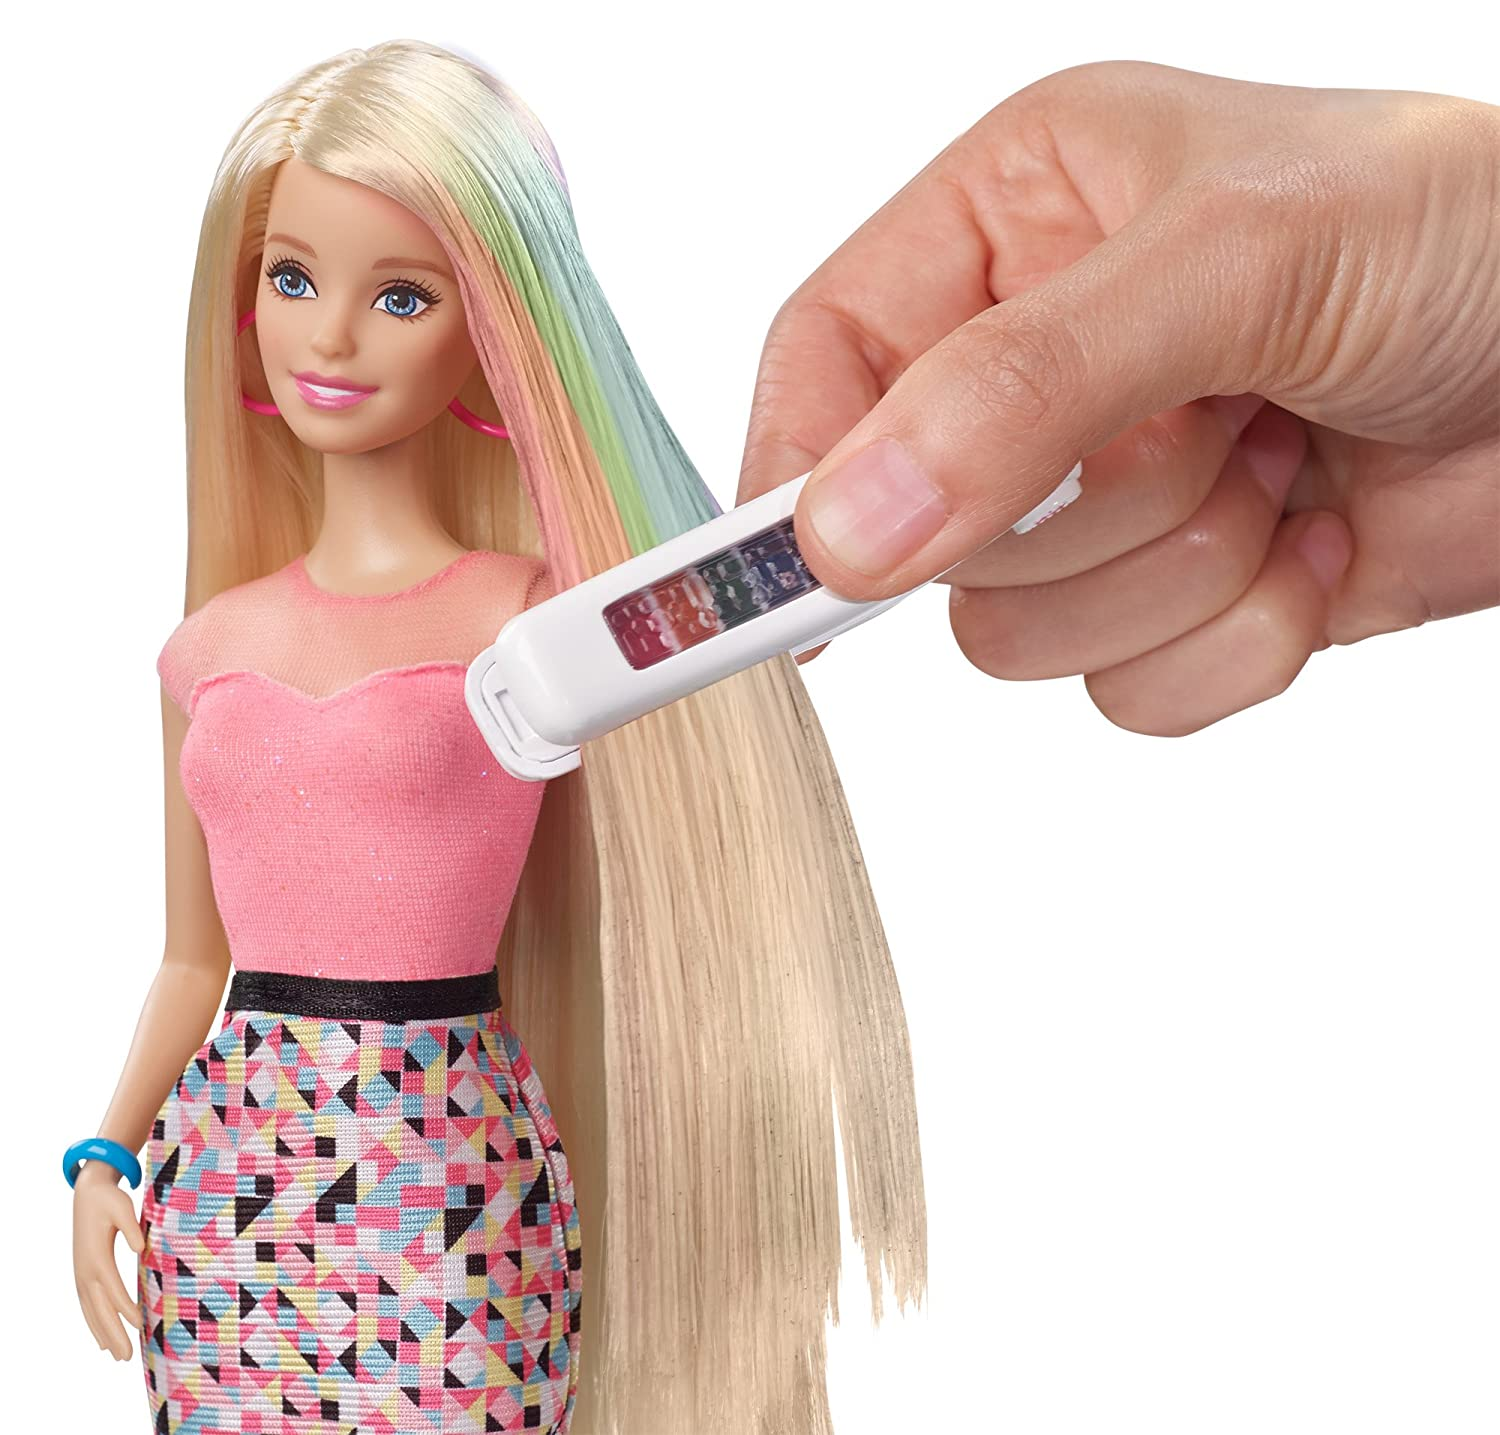 Buy Barbie Rainbow Hair Doll Multi Color Online At Low Prices In - Barbie hairstyle design game